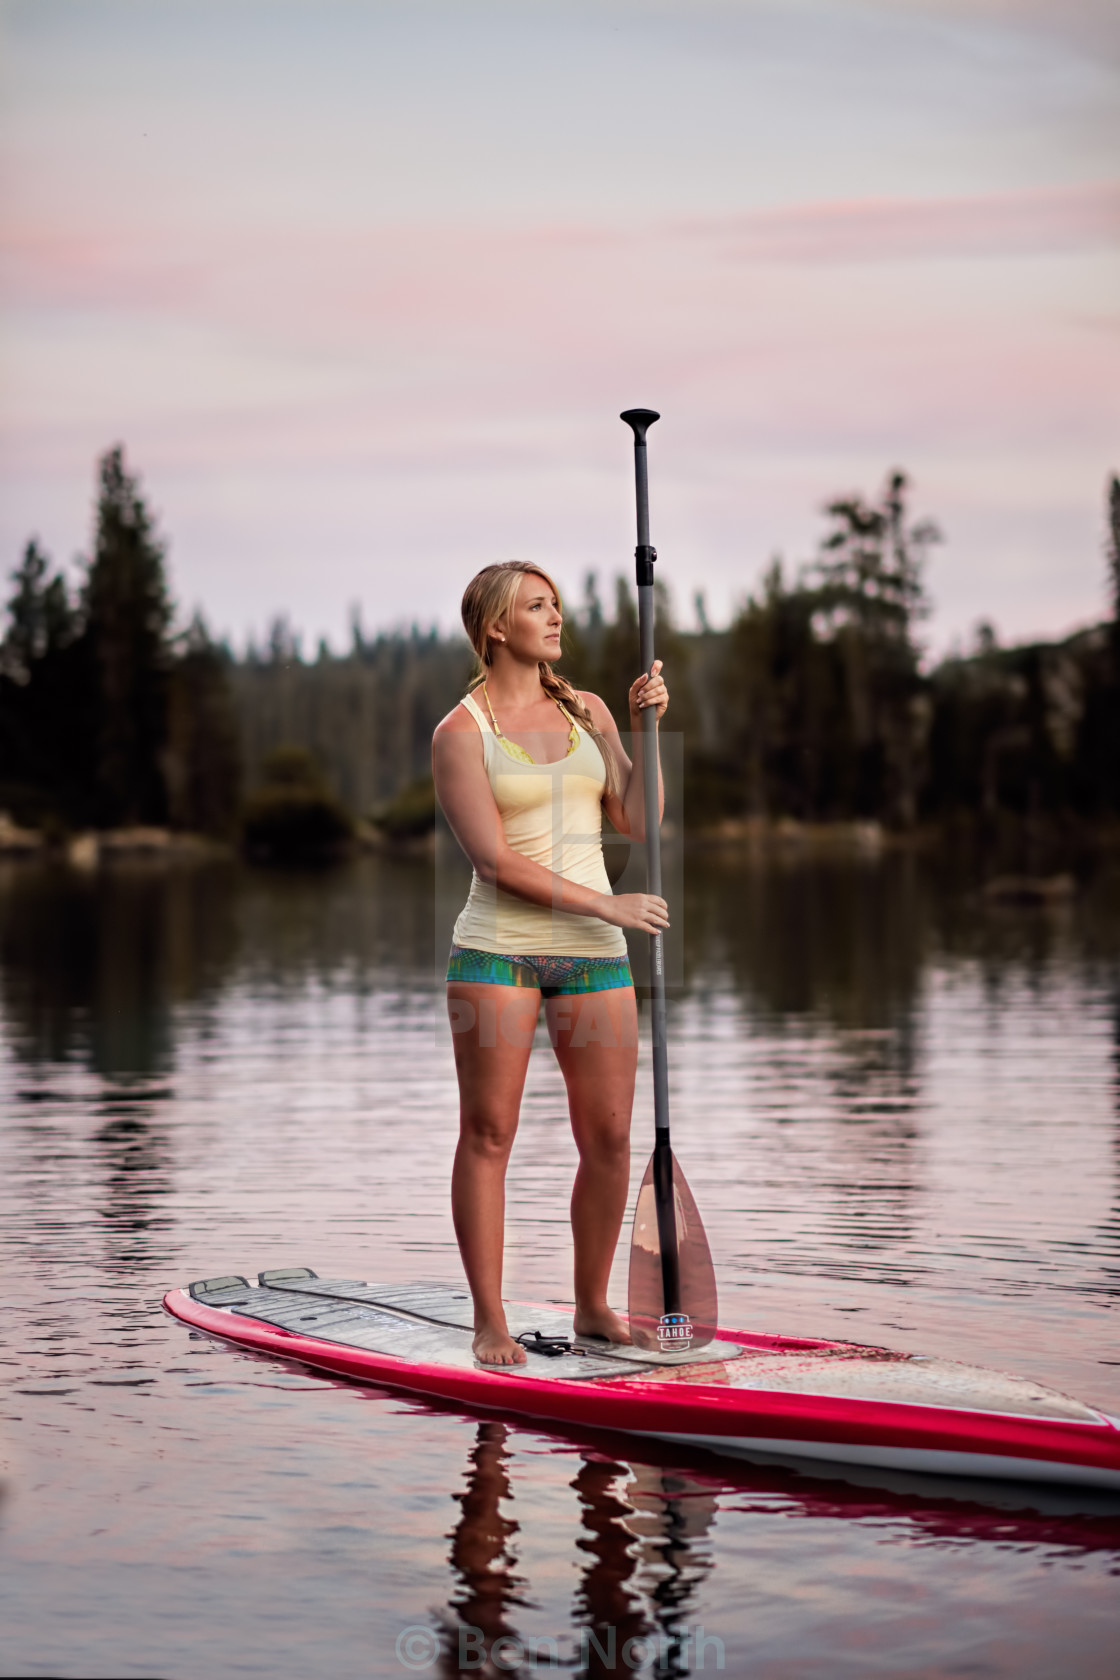 """A Young Woman Resting on a Paddle Board at Sunset"" stock image"